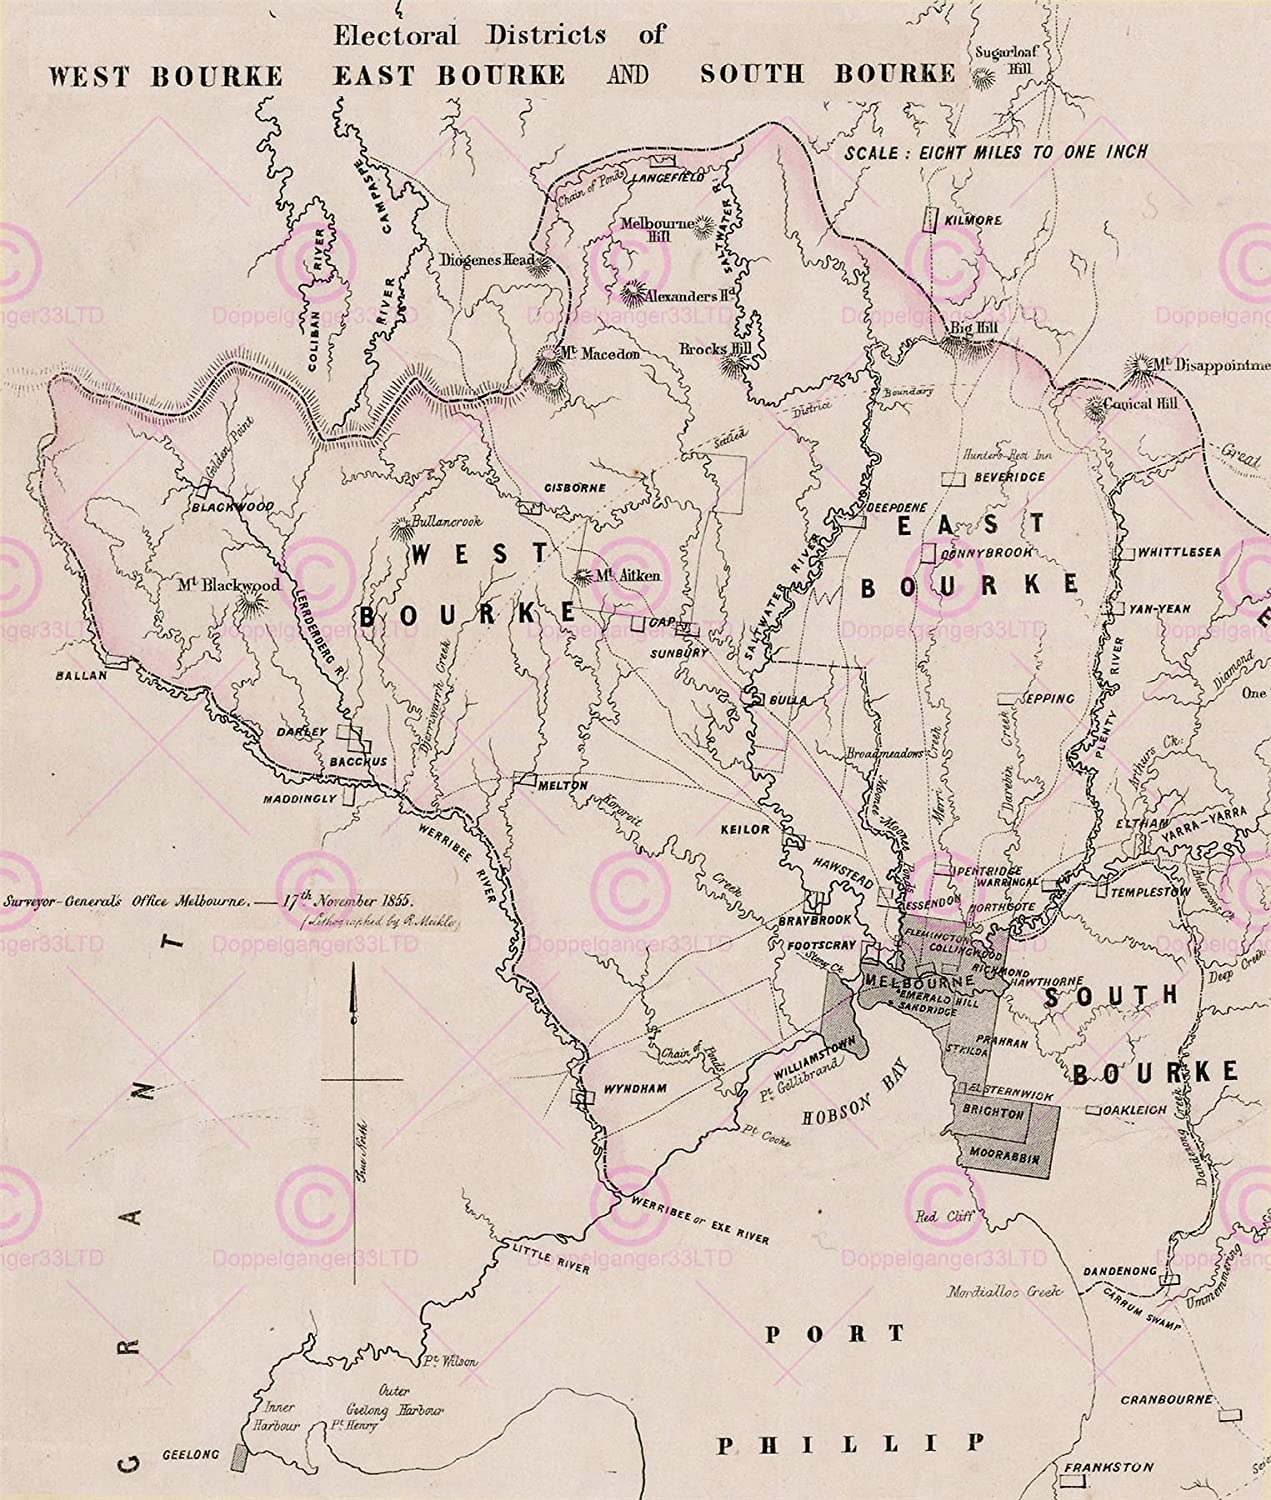 photo about Electoral Map Printable referred to as MAP POLITICAL 1855 BOURKE ELECTORAL DISTRICTS Hefty Duplicate